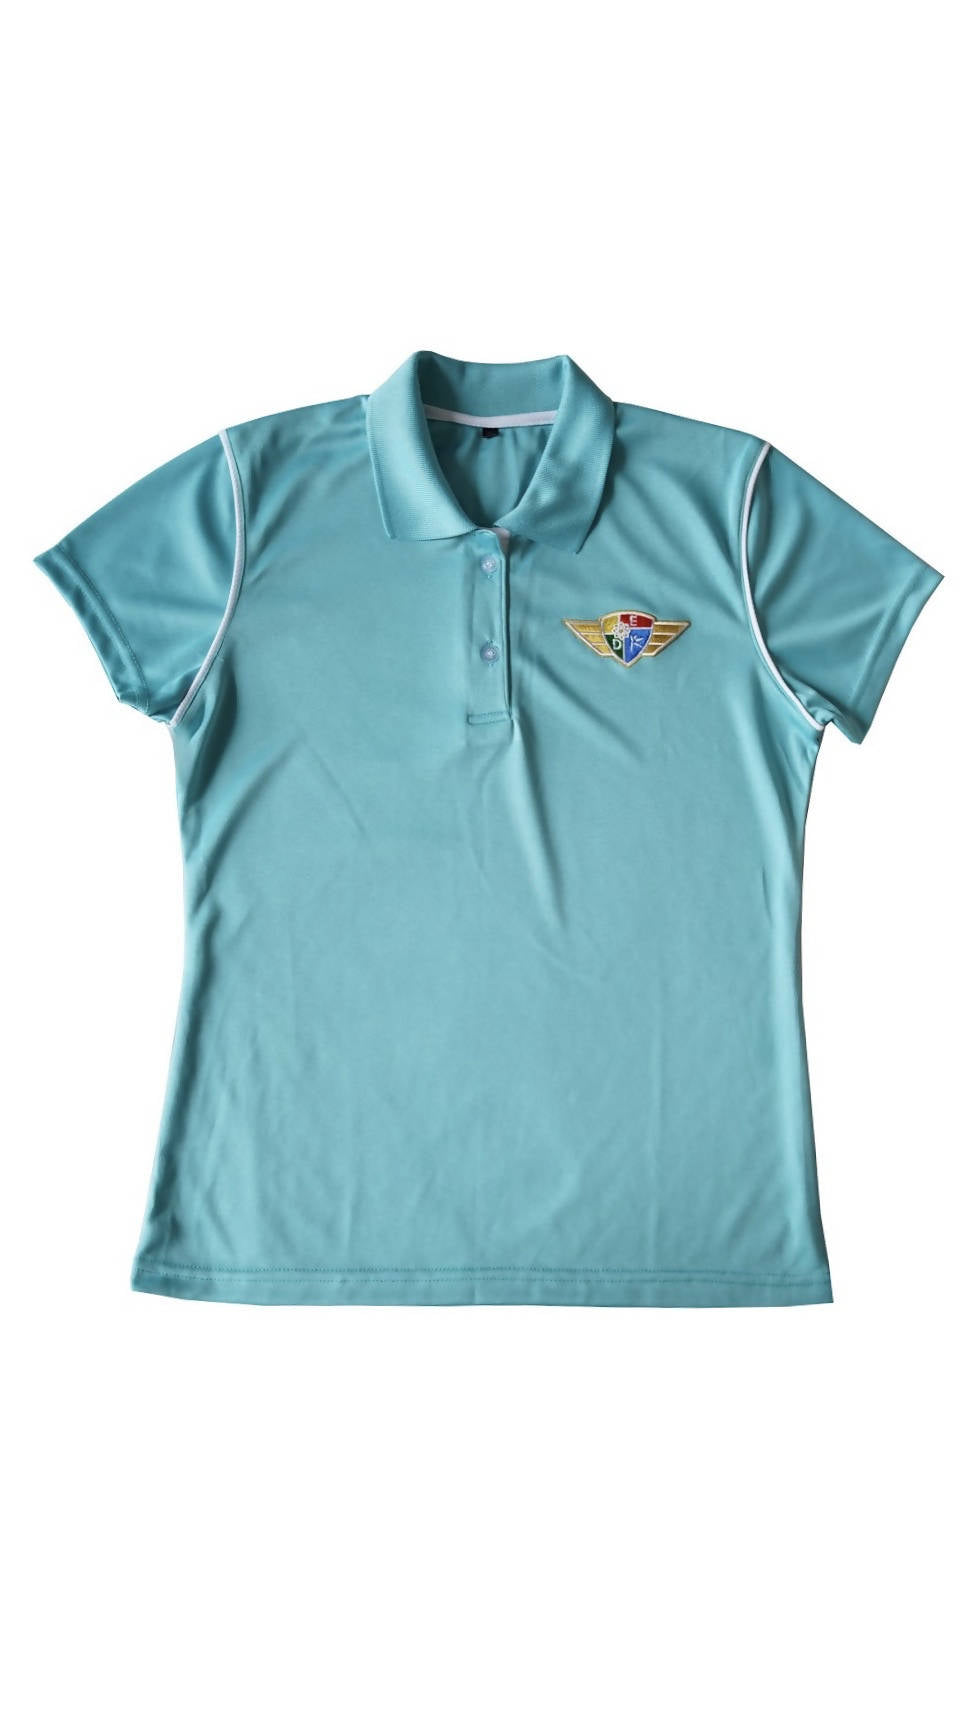 Dwi Emas Secondary Polo Top FEMALE